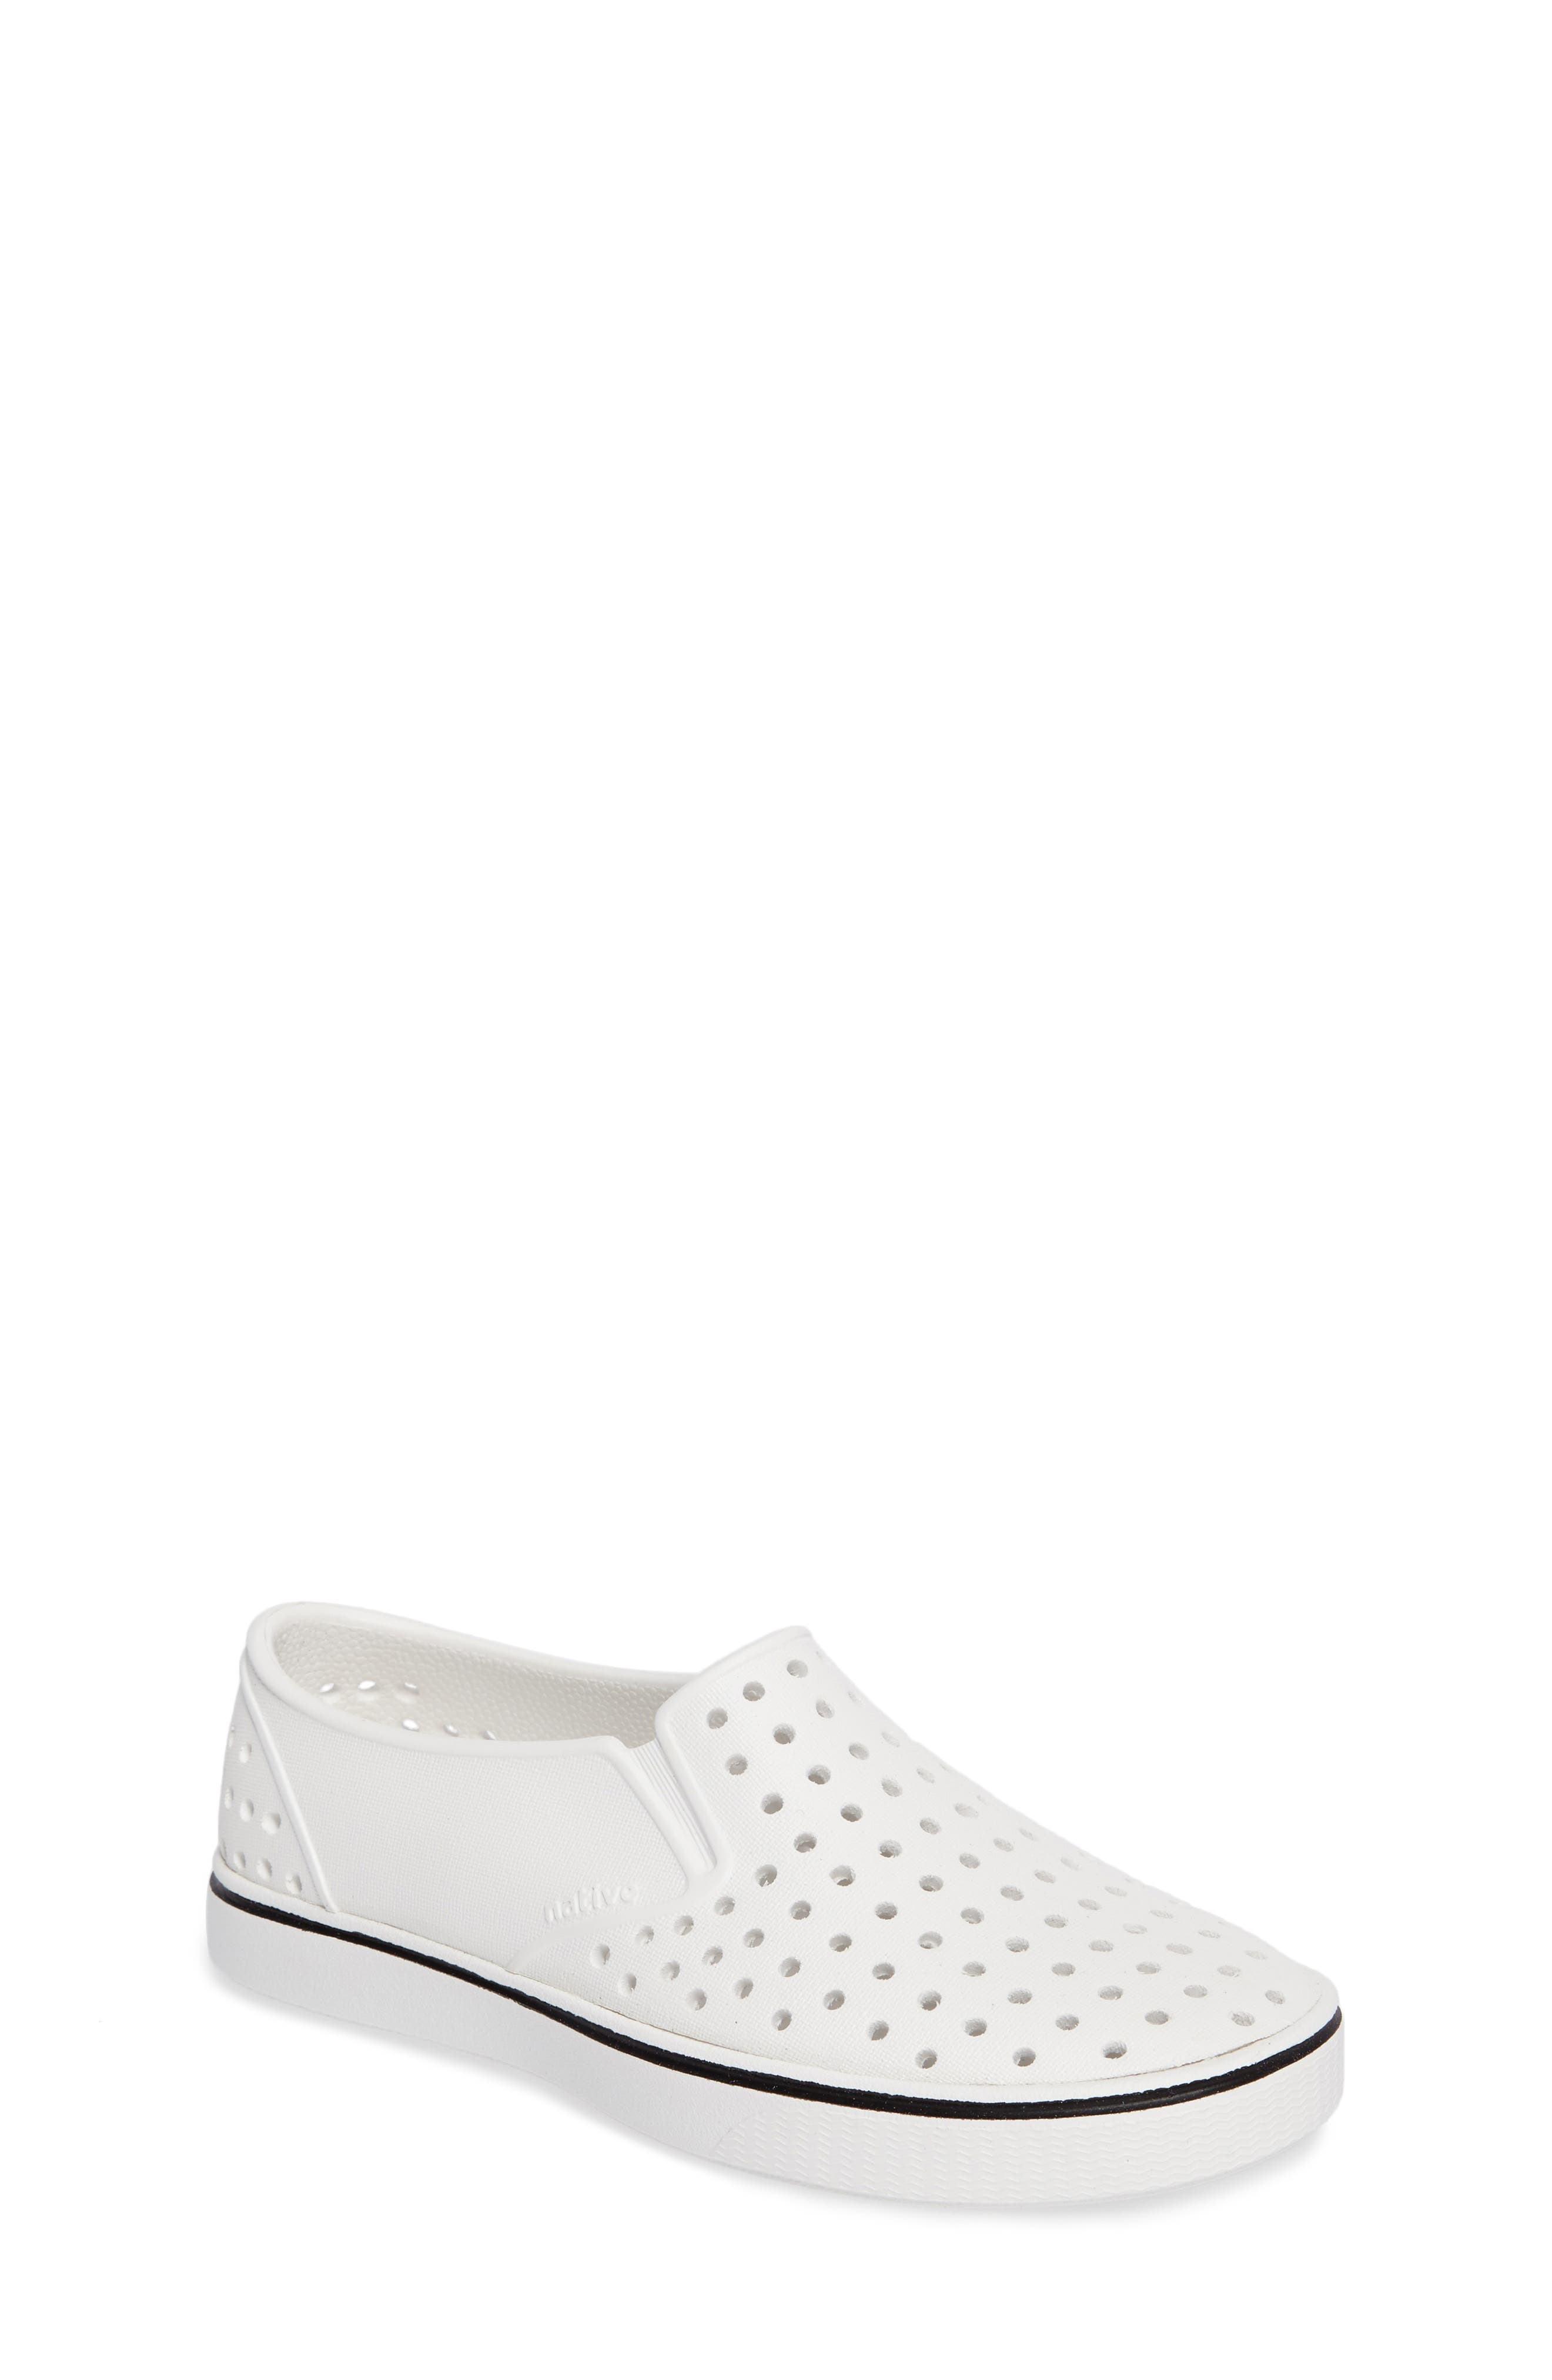 NATIVE SHOES Miles Water Friendly Slip-On Sneaker, Main, color, SHELL WHITE